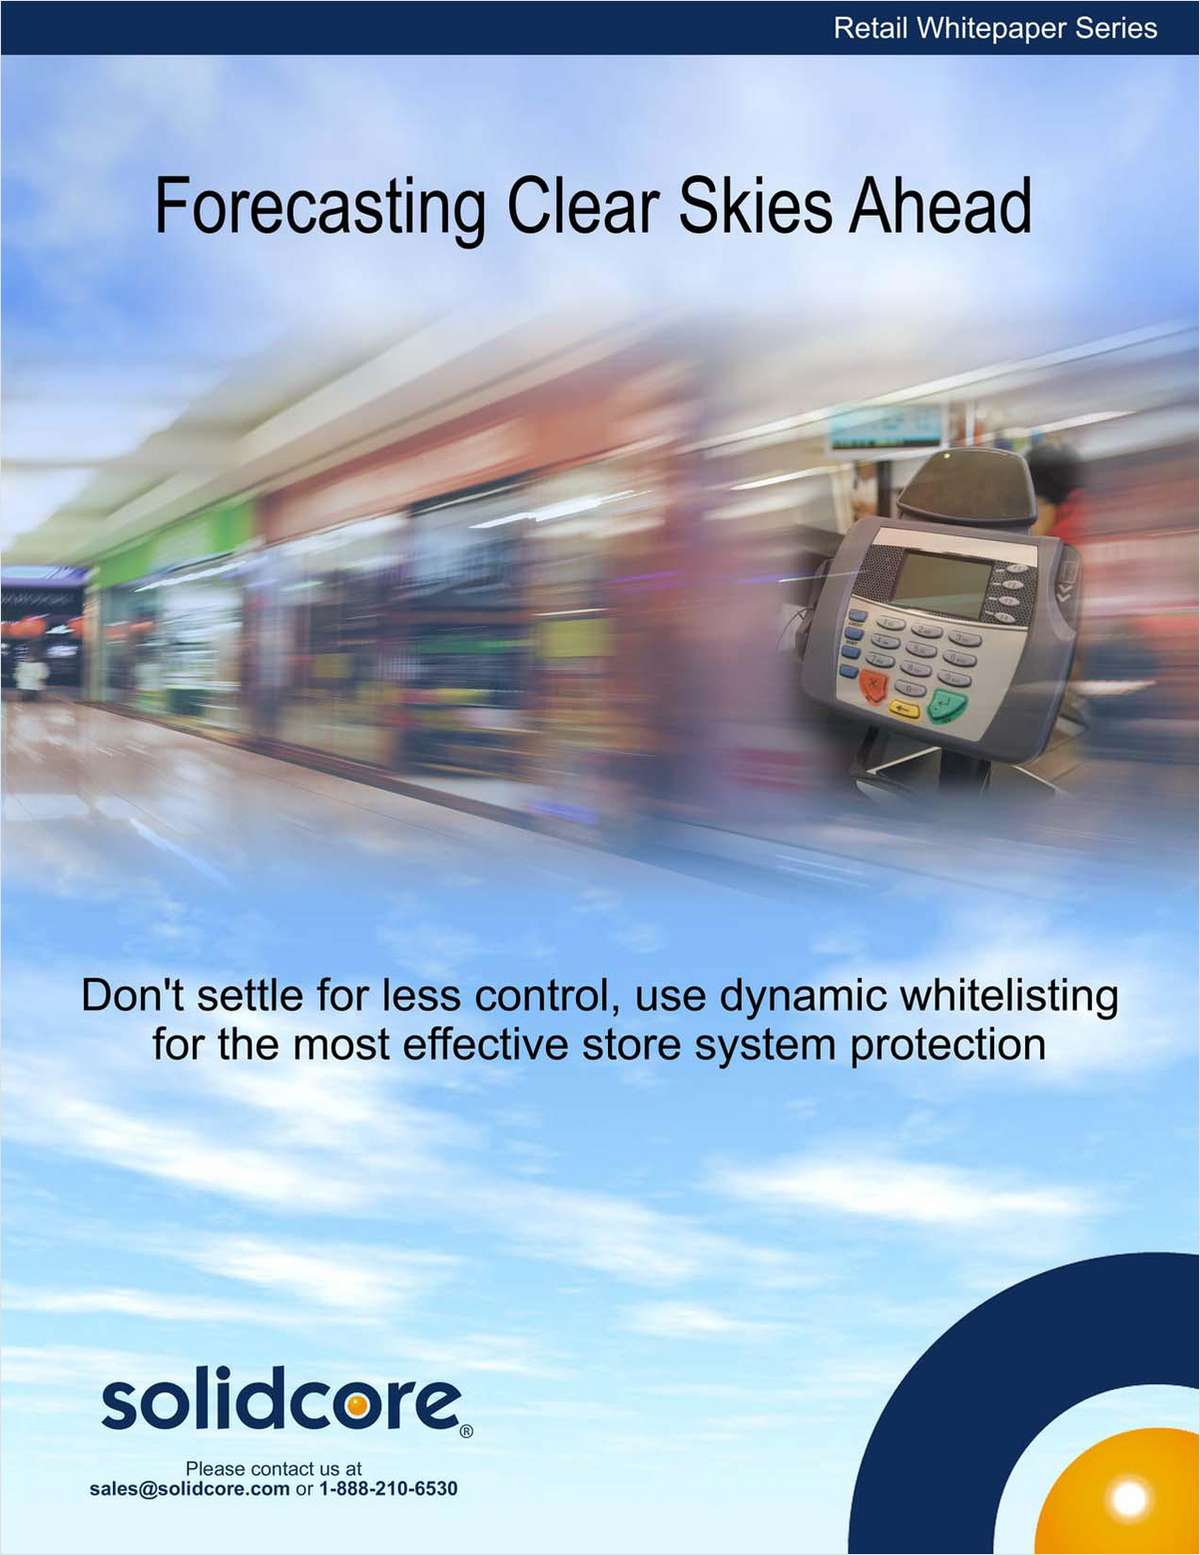 Forecasting Clear Skies for Retailers